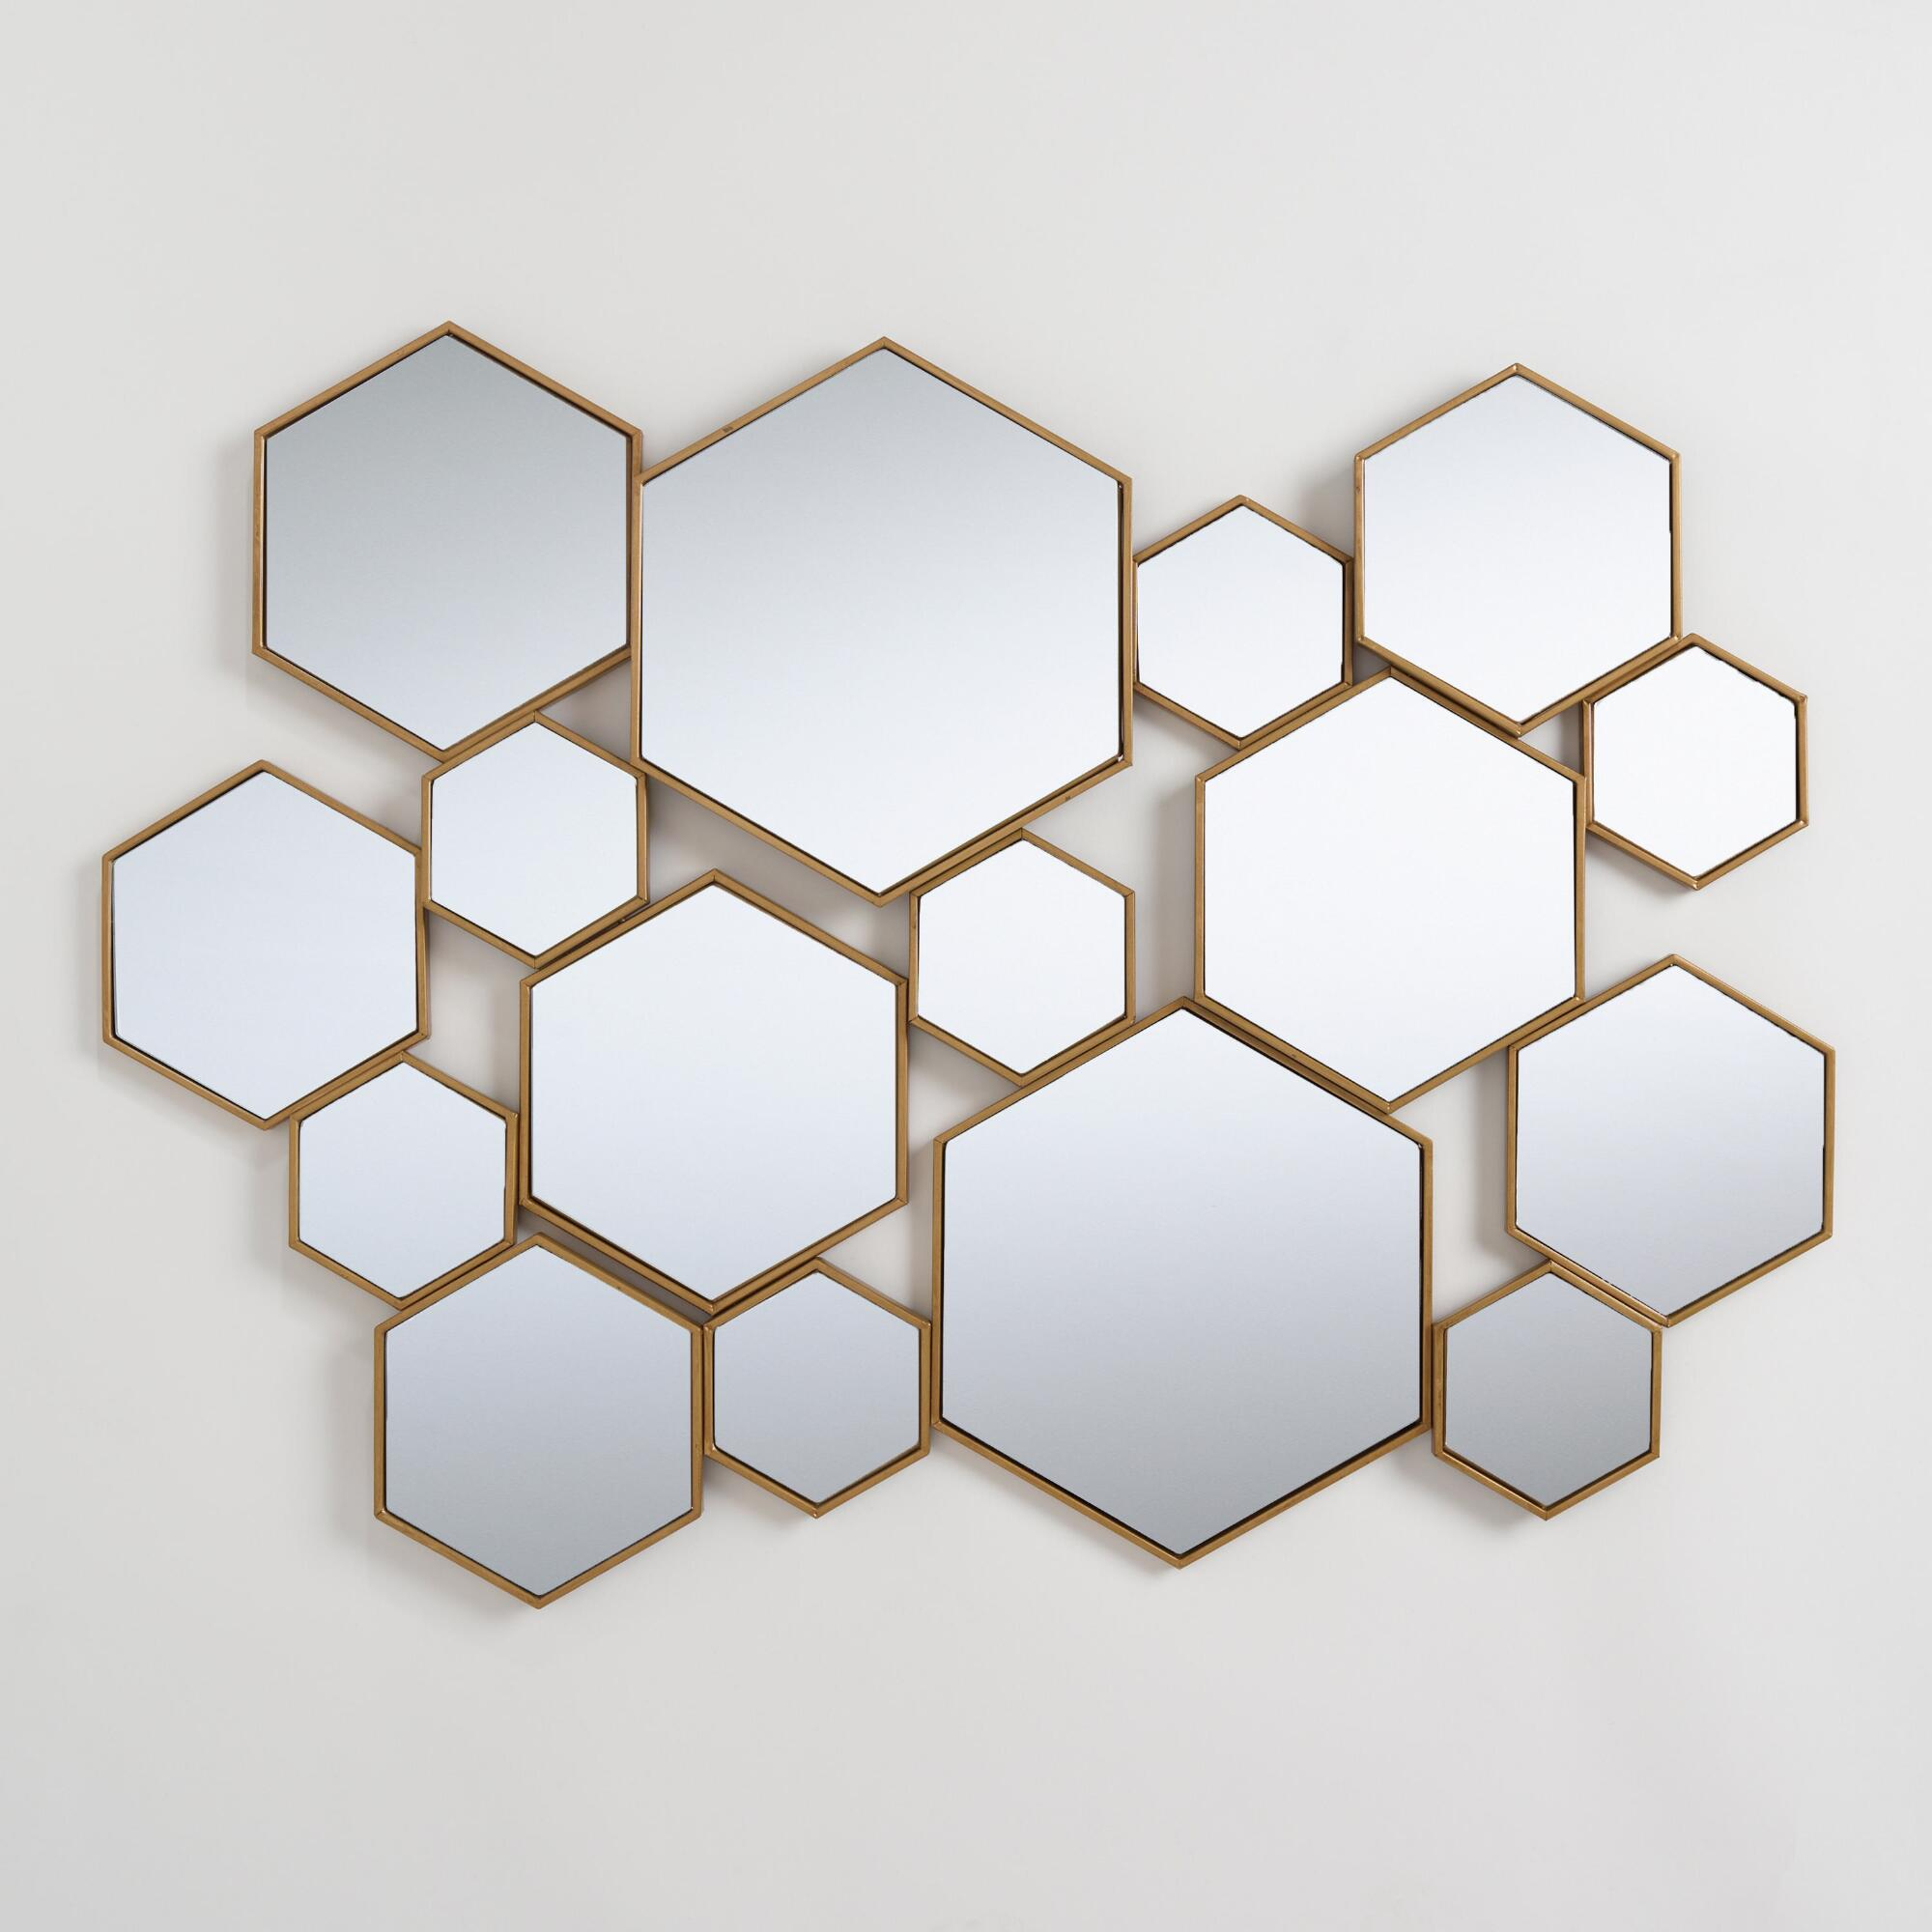 Brass Metal Hexagon Mirror Panel: Metallic/goldworld within Swagger Accent Wall Mirrors (Image 3 of 30)